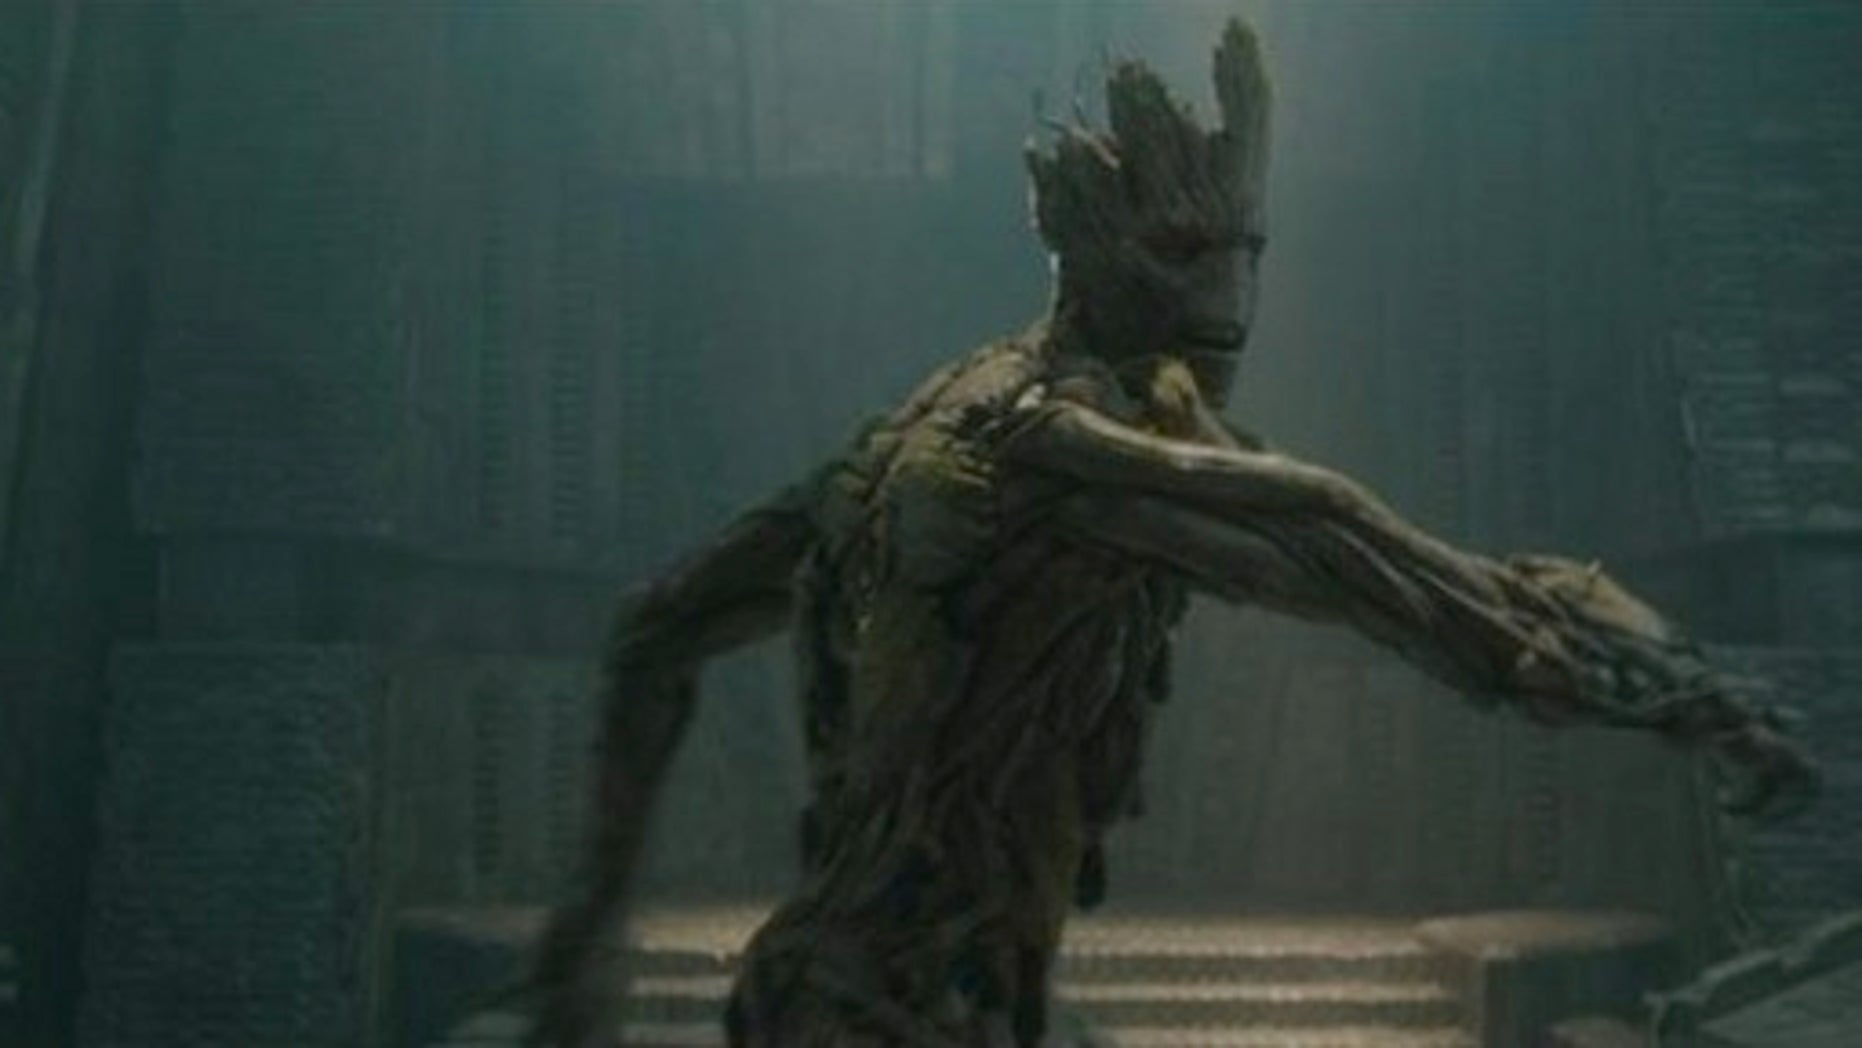 """In the film """"Guardians of the Galaxy,"""" the character """"Groot"""" is a tree that can walk and talk."""